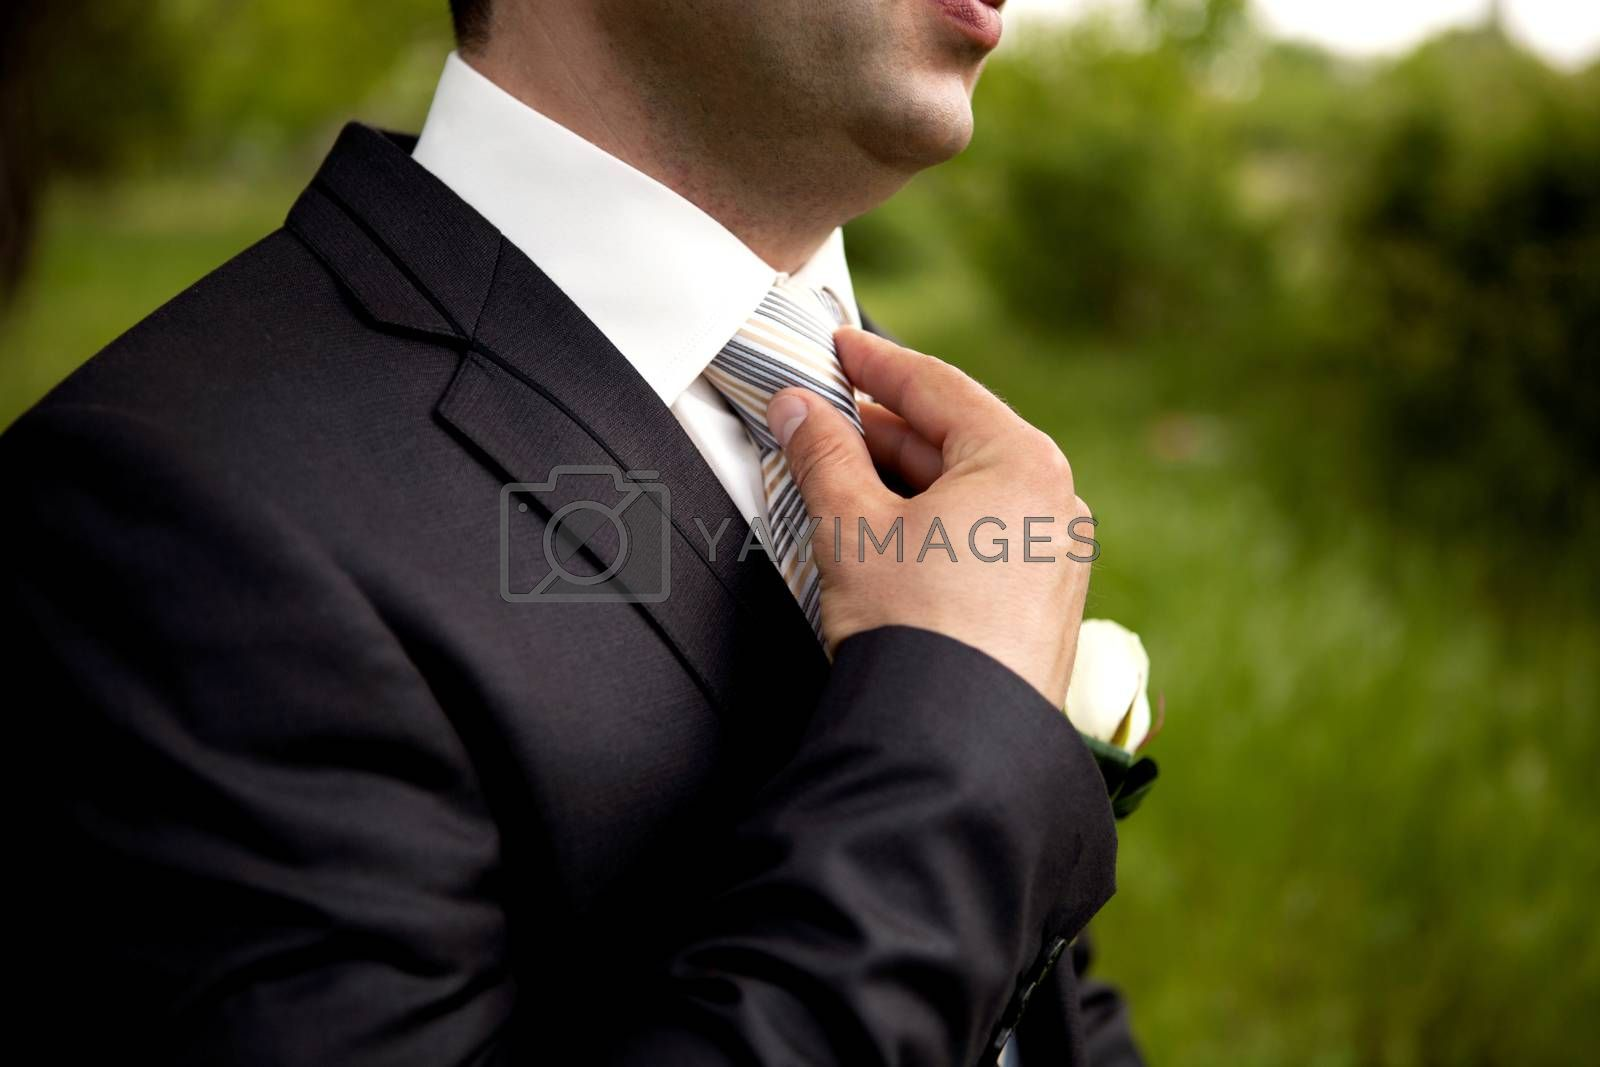 The groom in a suit, corrects a tie with his hand. Close-up composition